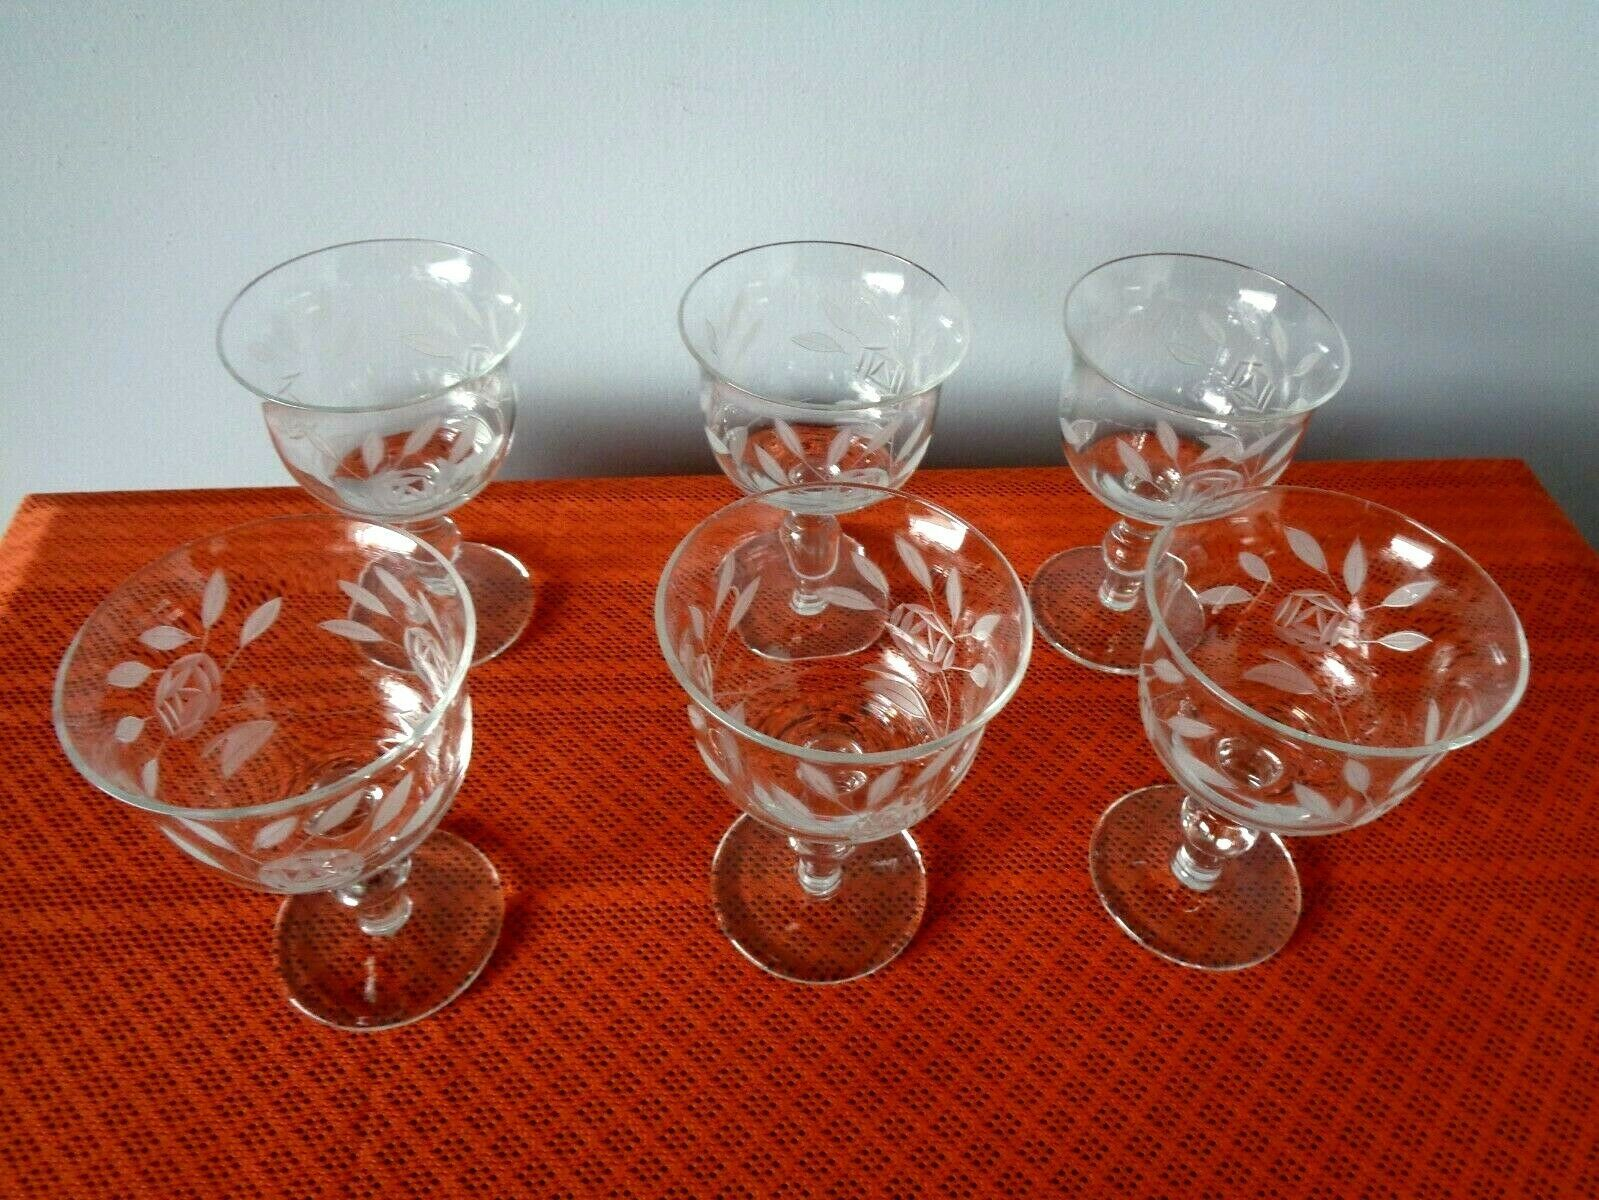 Primary image for 6 Vintage Etched Wine or Brandy Goblets  With Rose Pattern